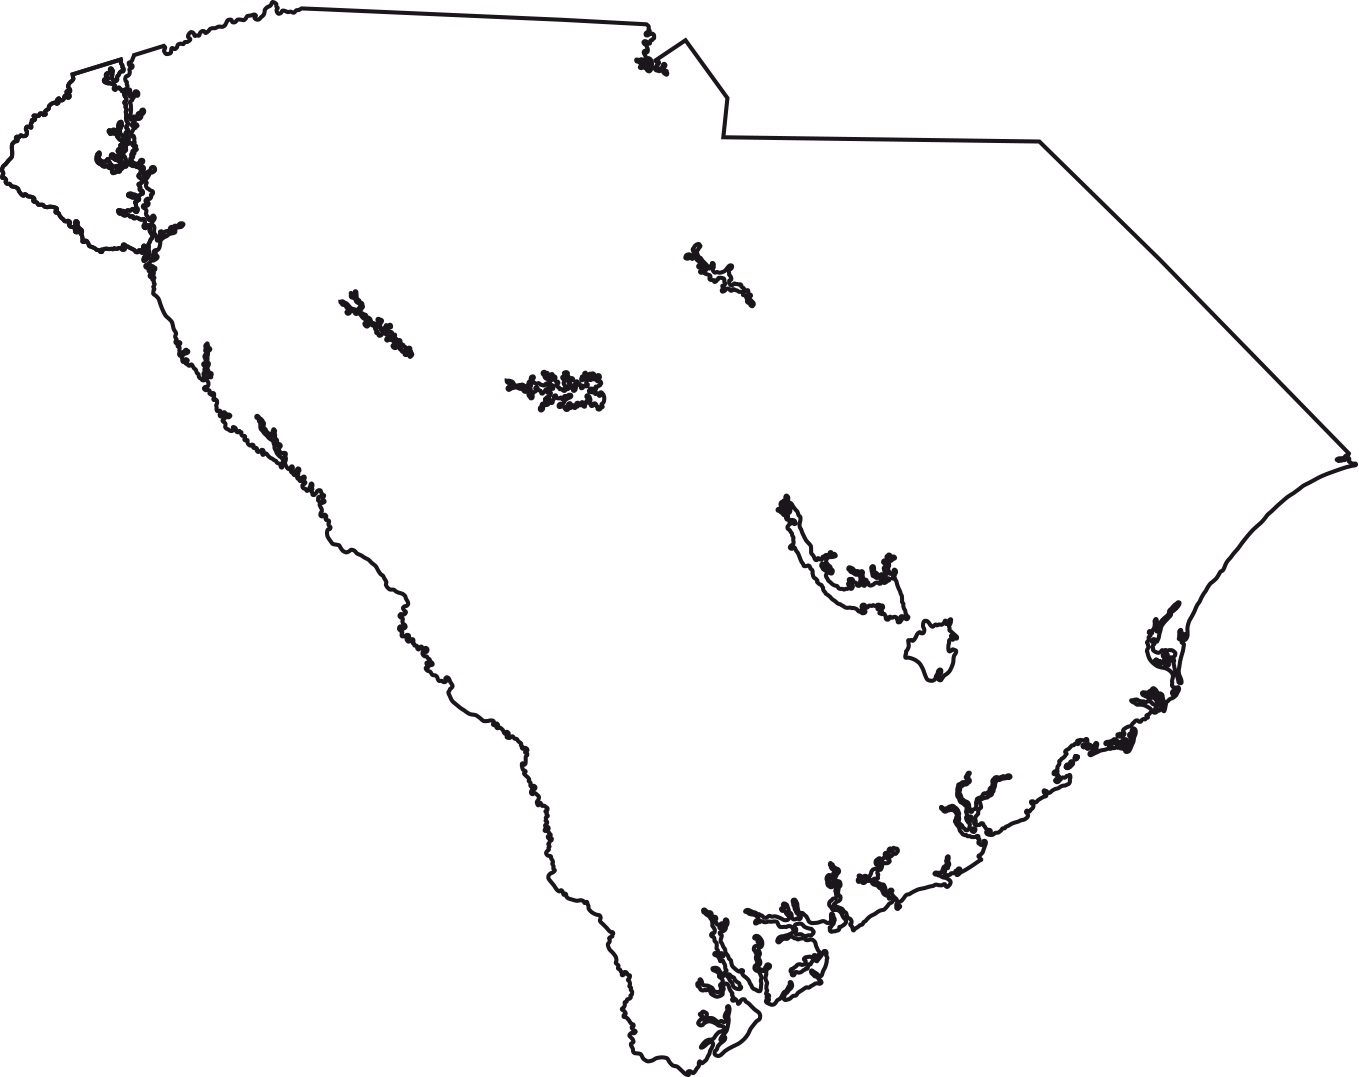 South Carolina blank outline Map | Large Printable High Resolution and Standard Map